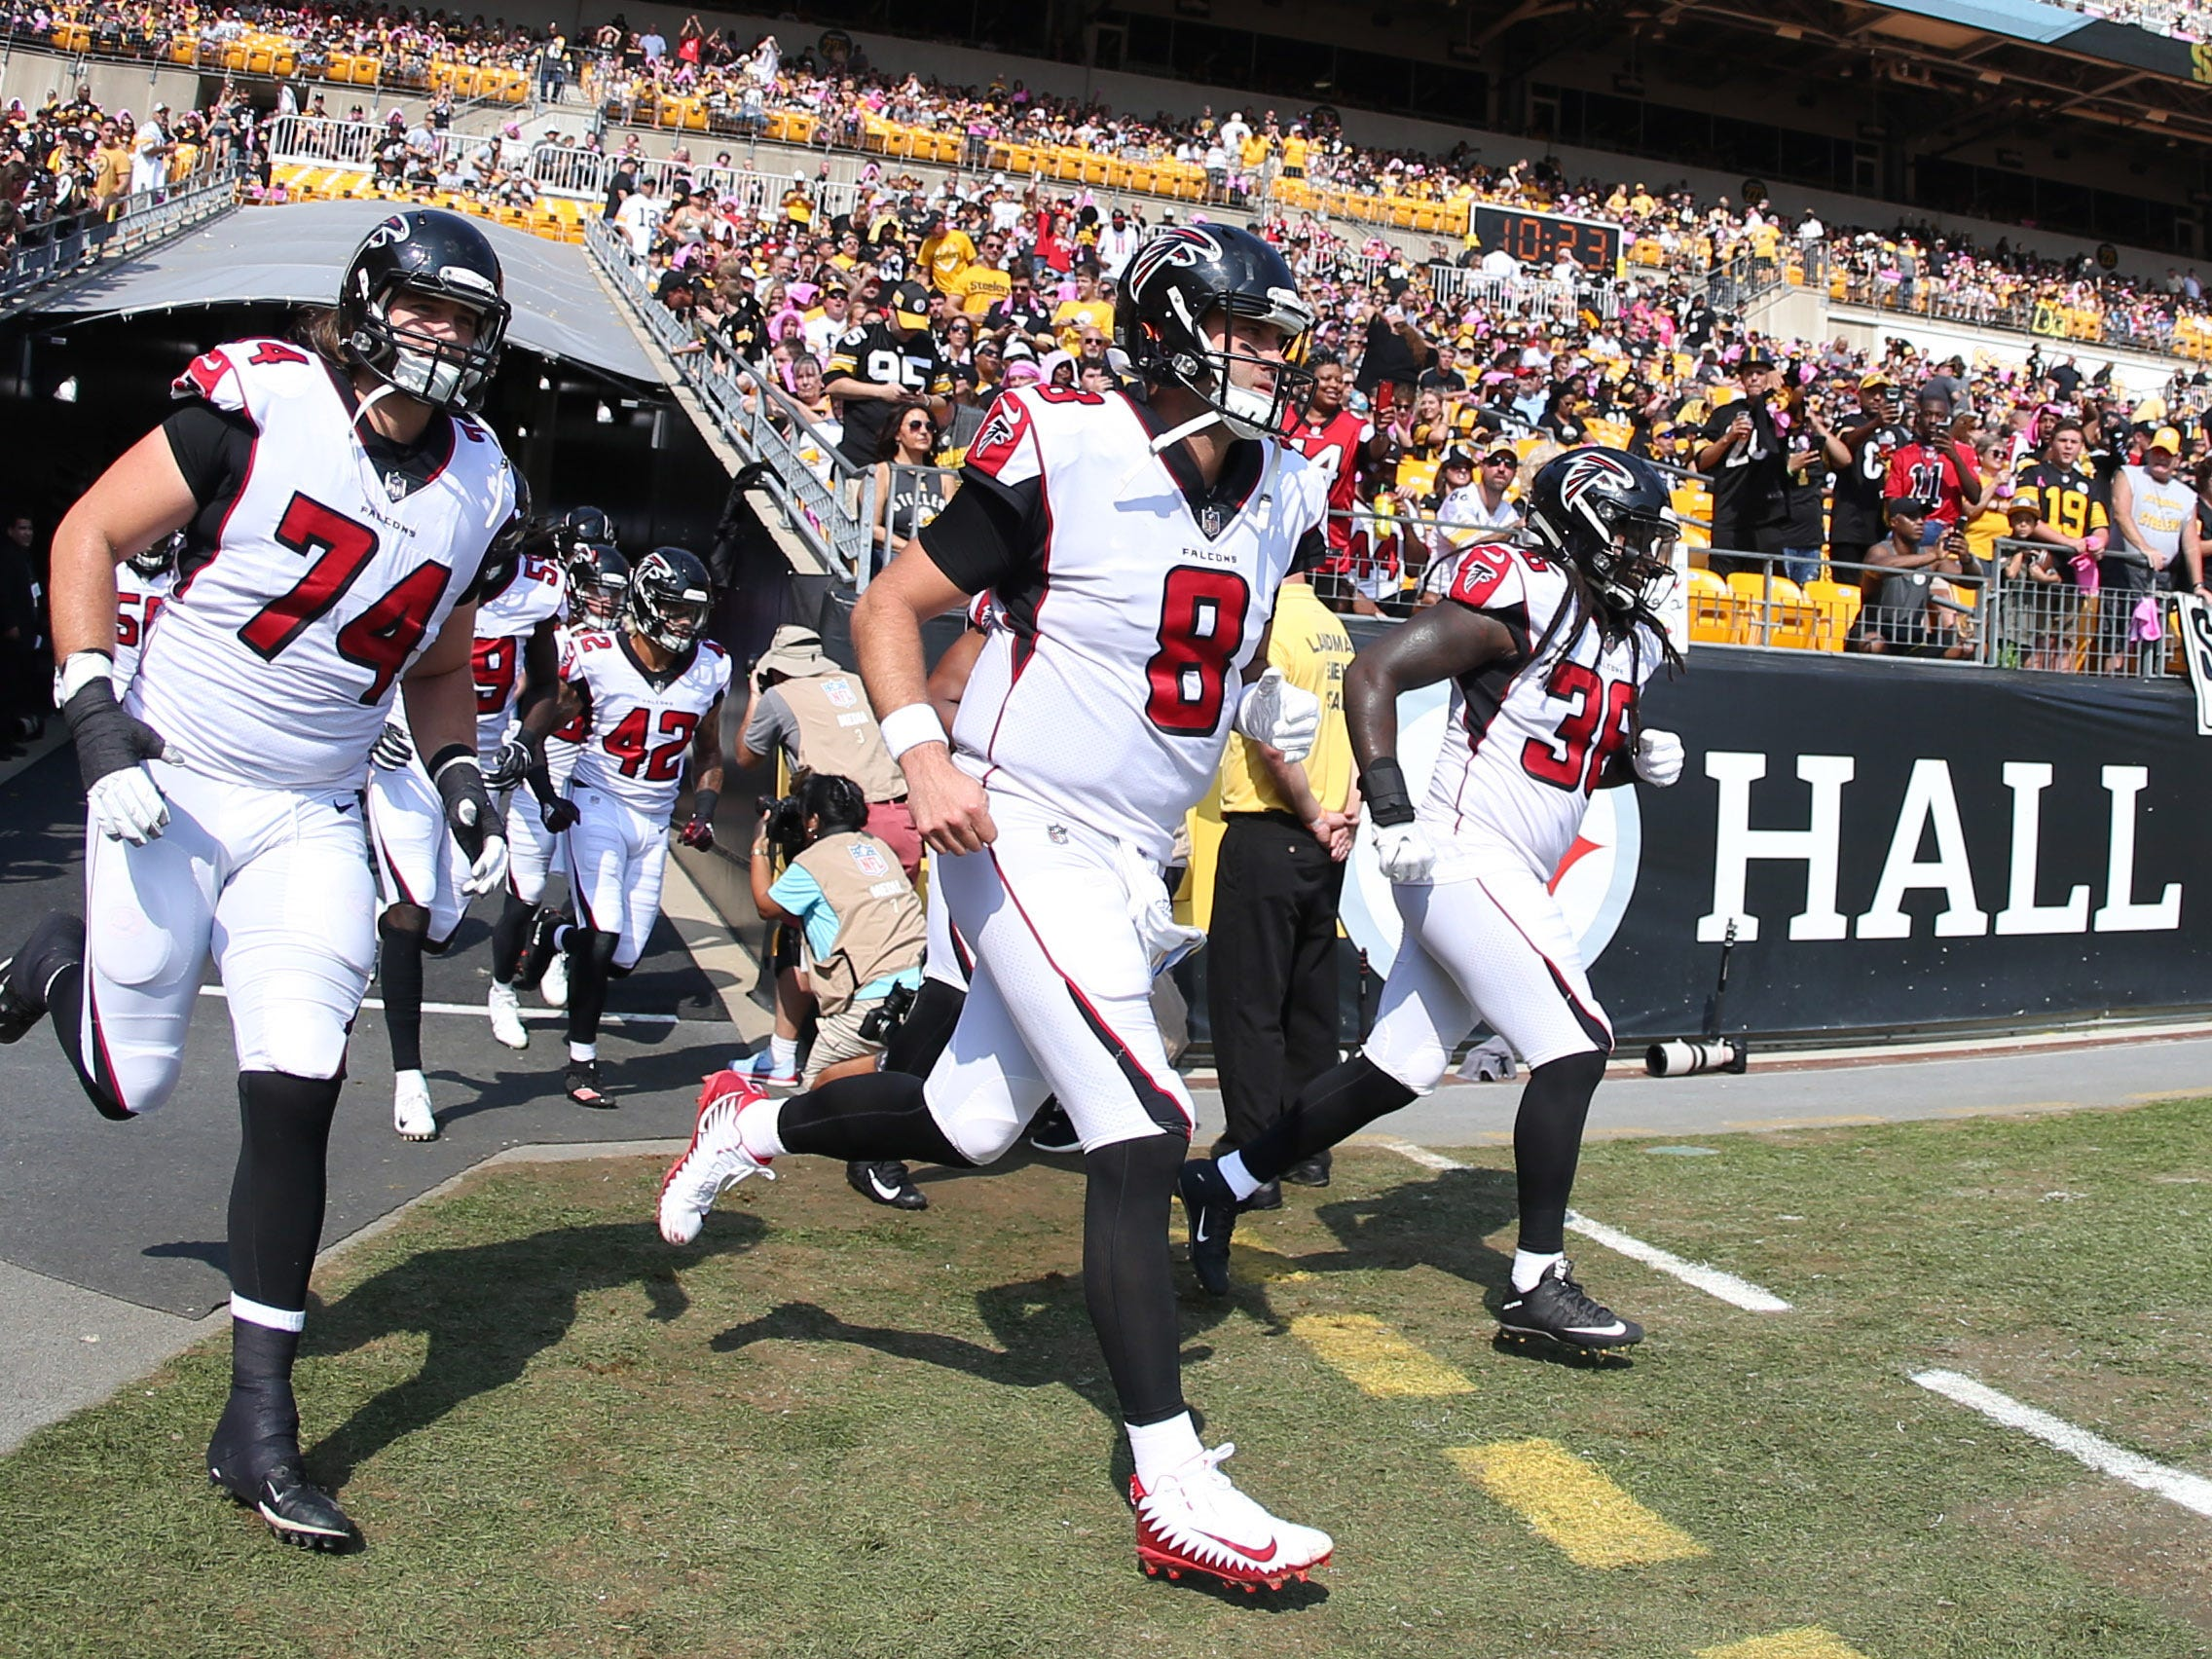 Atlanta Falcons offensive tackle Ty Sambrailo (74) and quarterback Matt Schaub (8) take the field to play the Pittsburgh Steelers earlier this season. Sambrailo made his first start of the season last week.